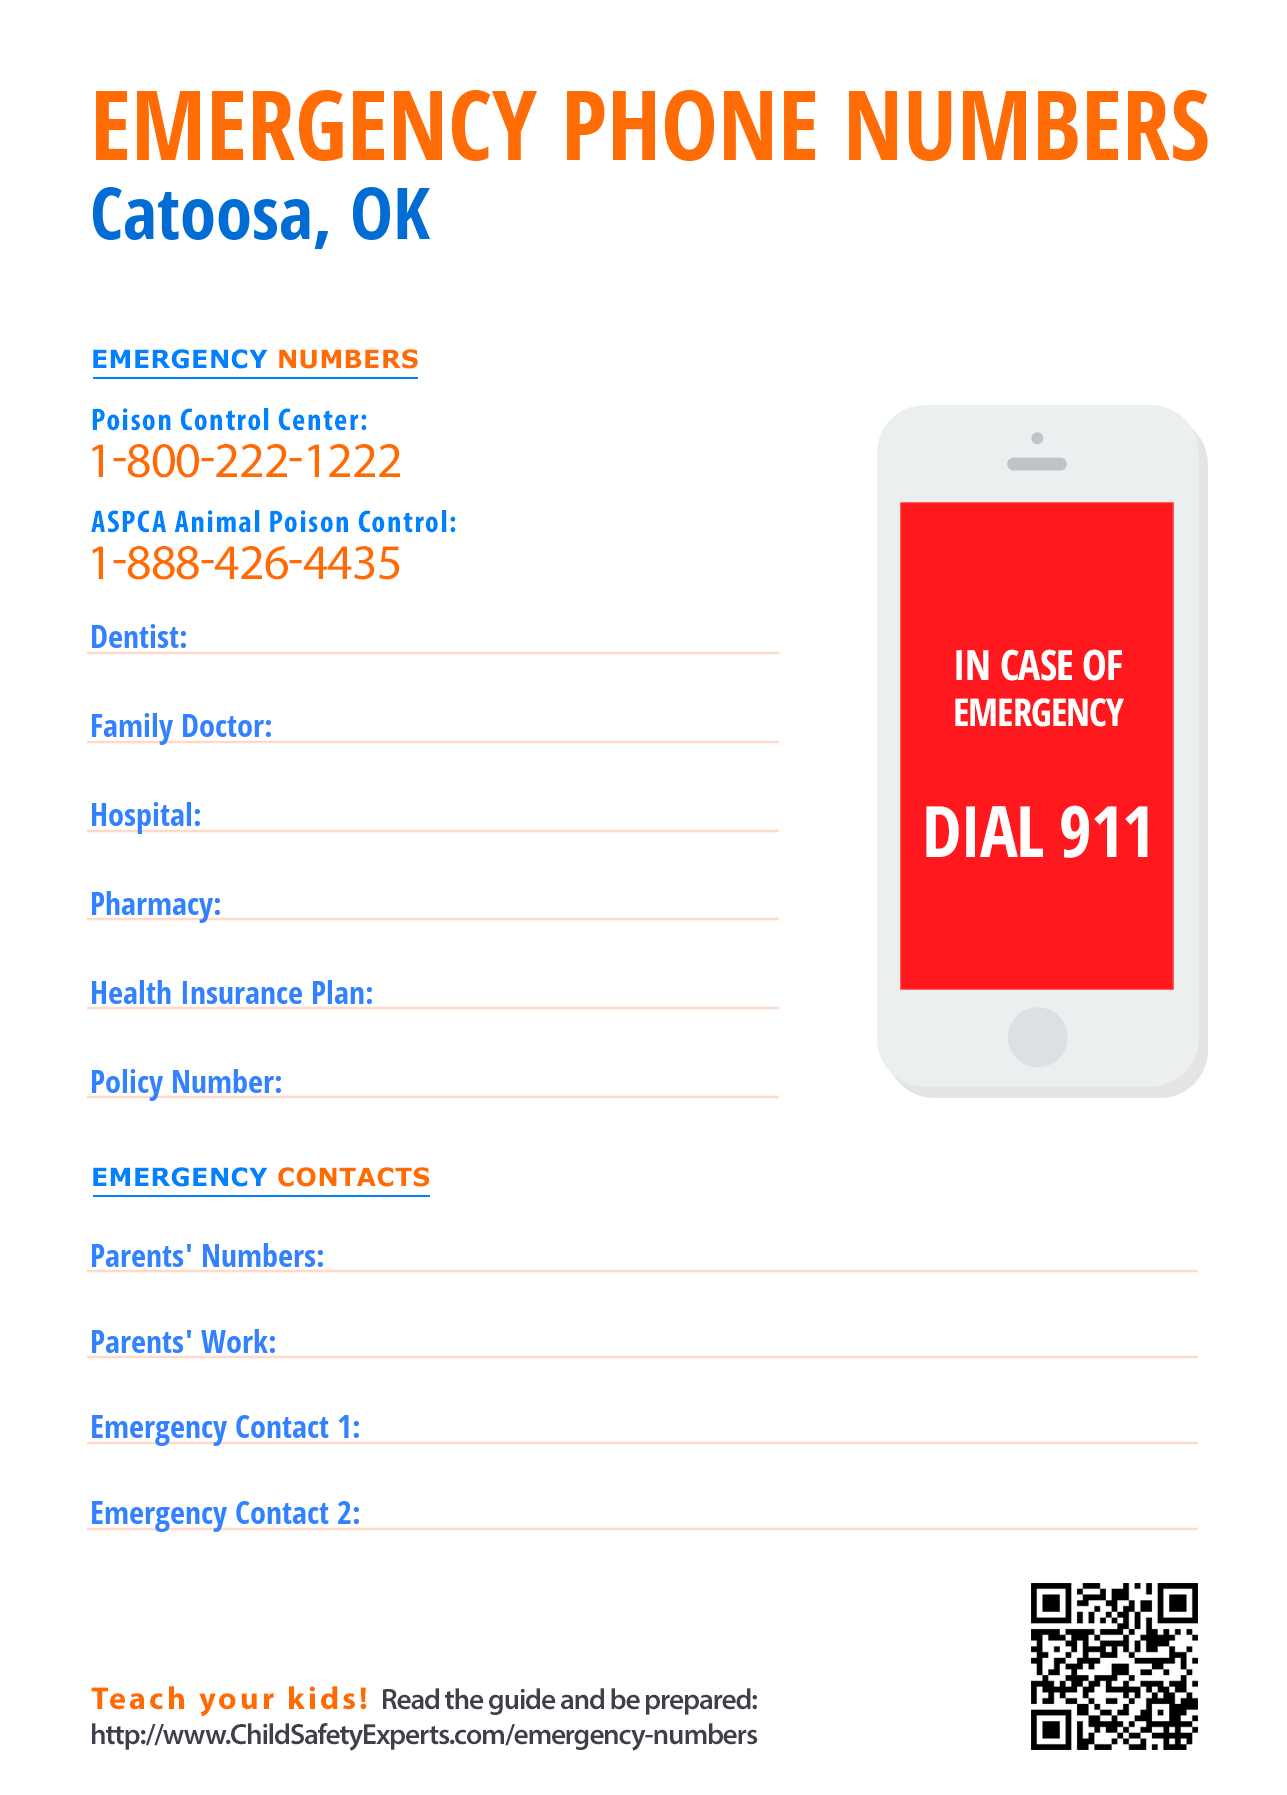 Important emergency phone numbers in Catoosa, Oklahoma